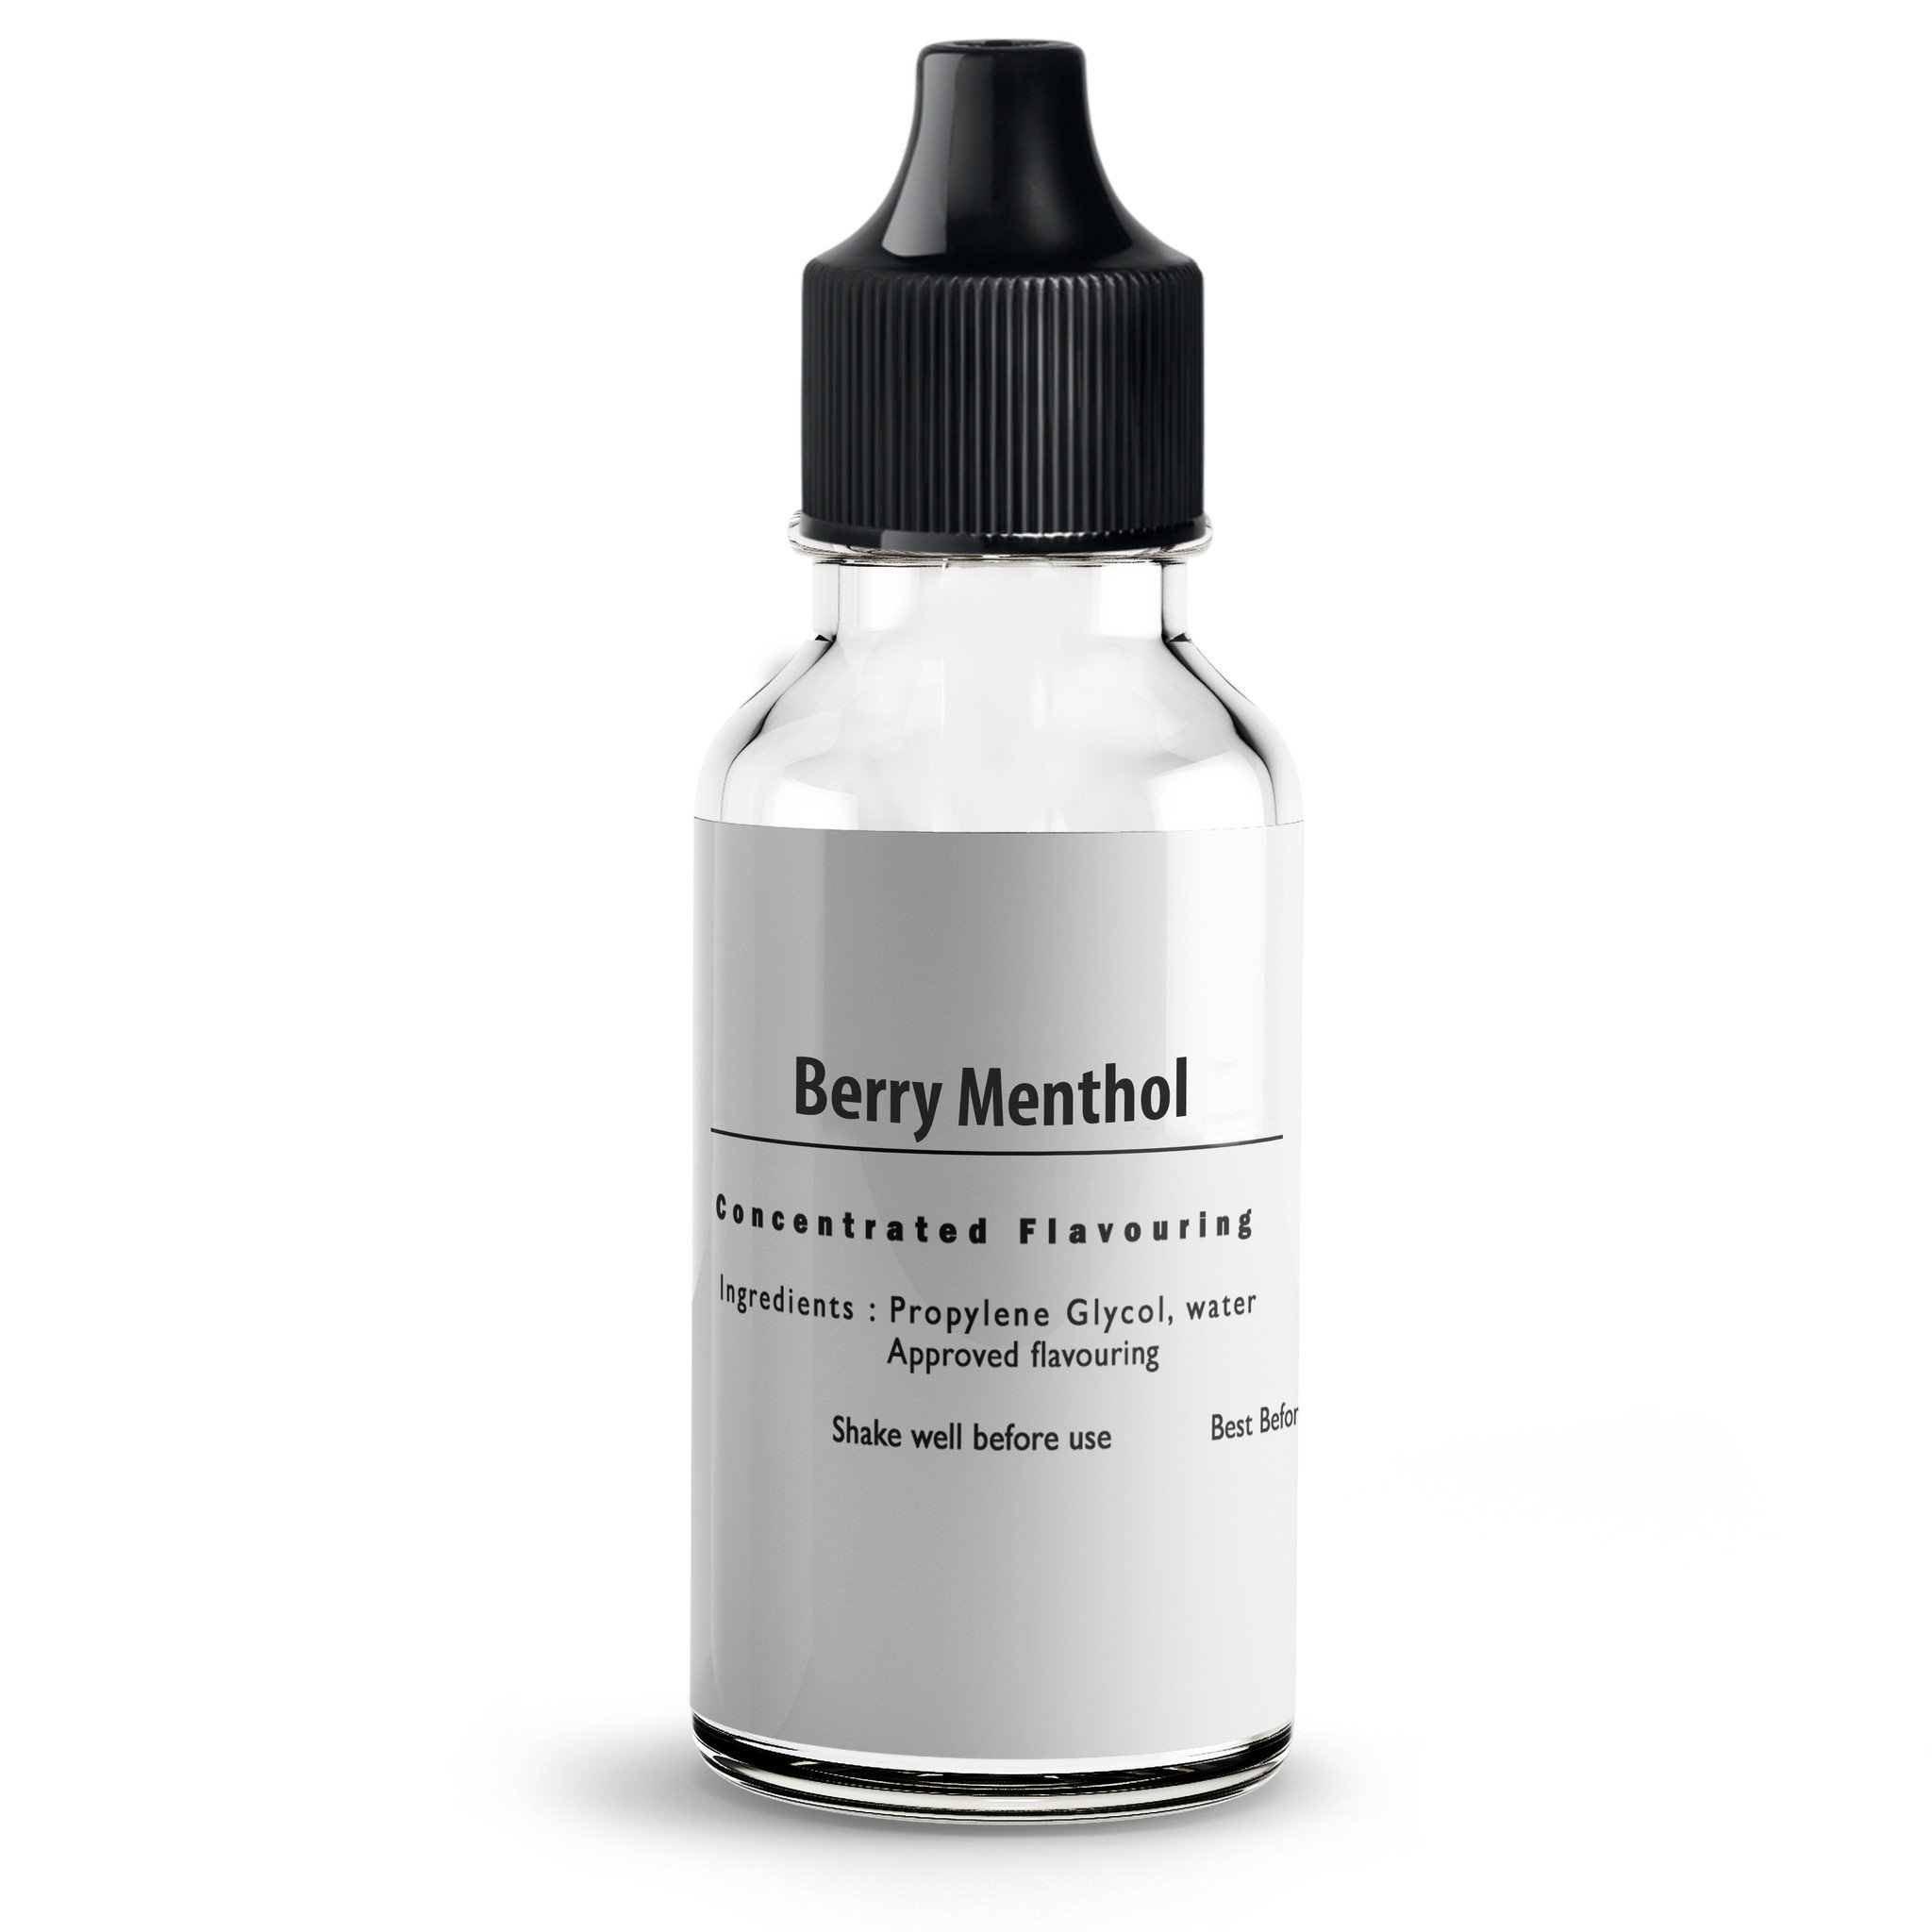 Mixed Berries & Menthol Flavour Concentrate For E Liquids